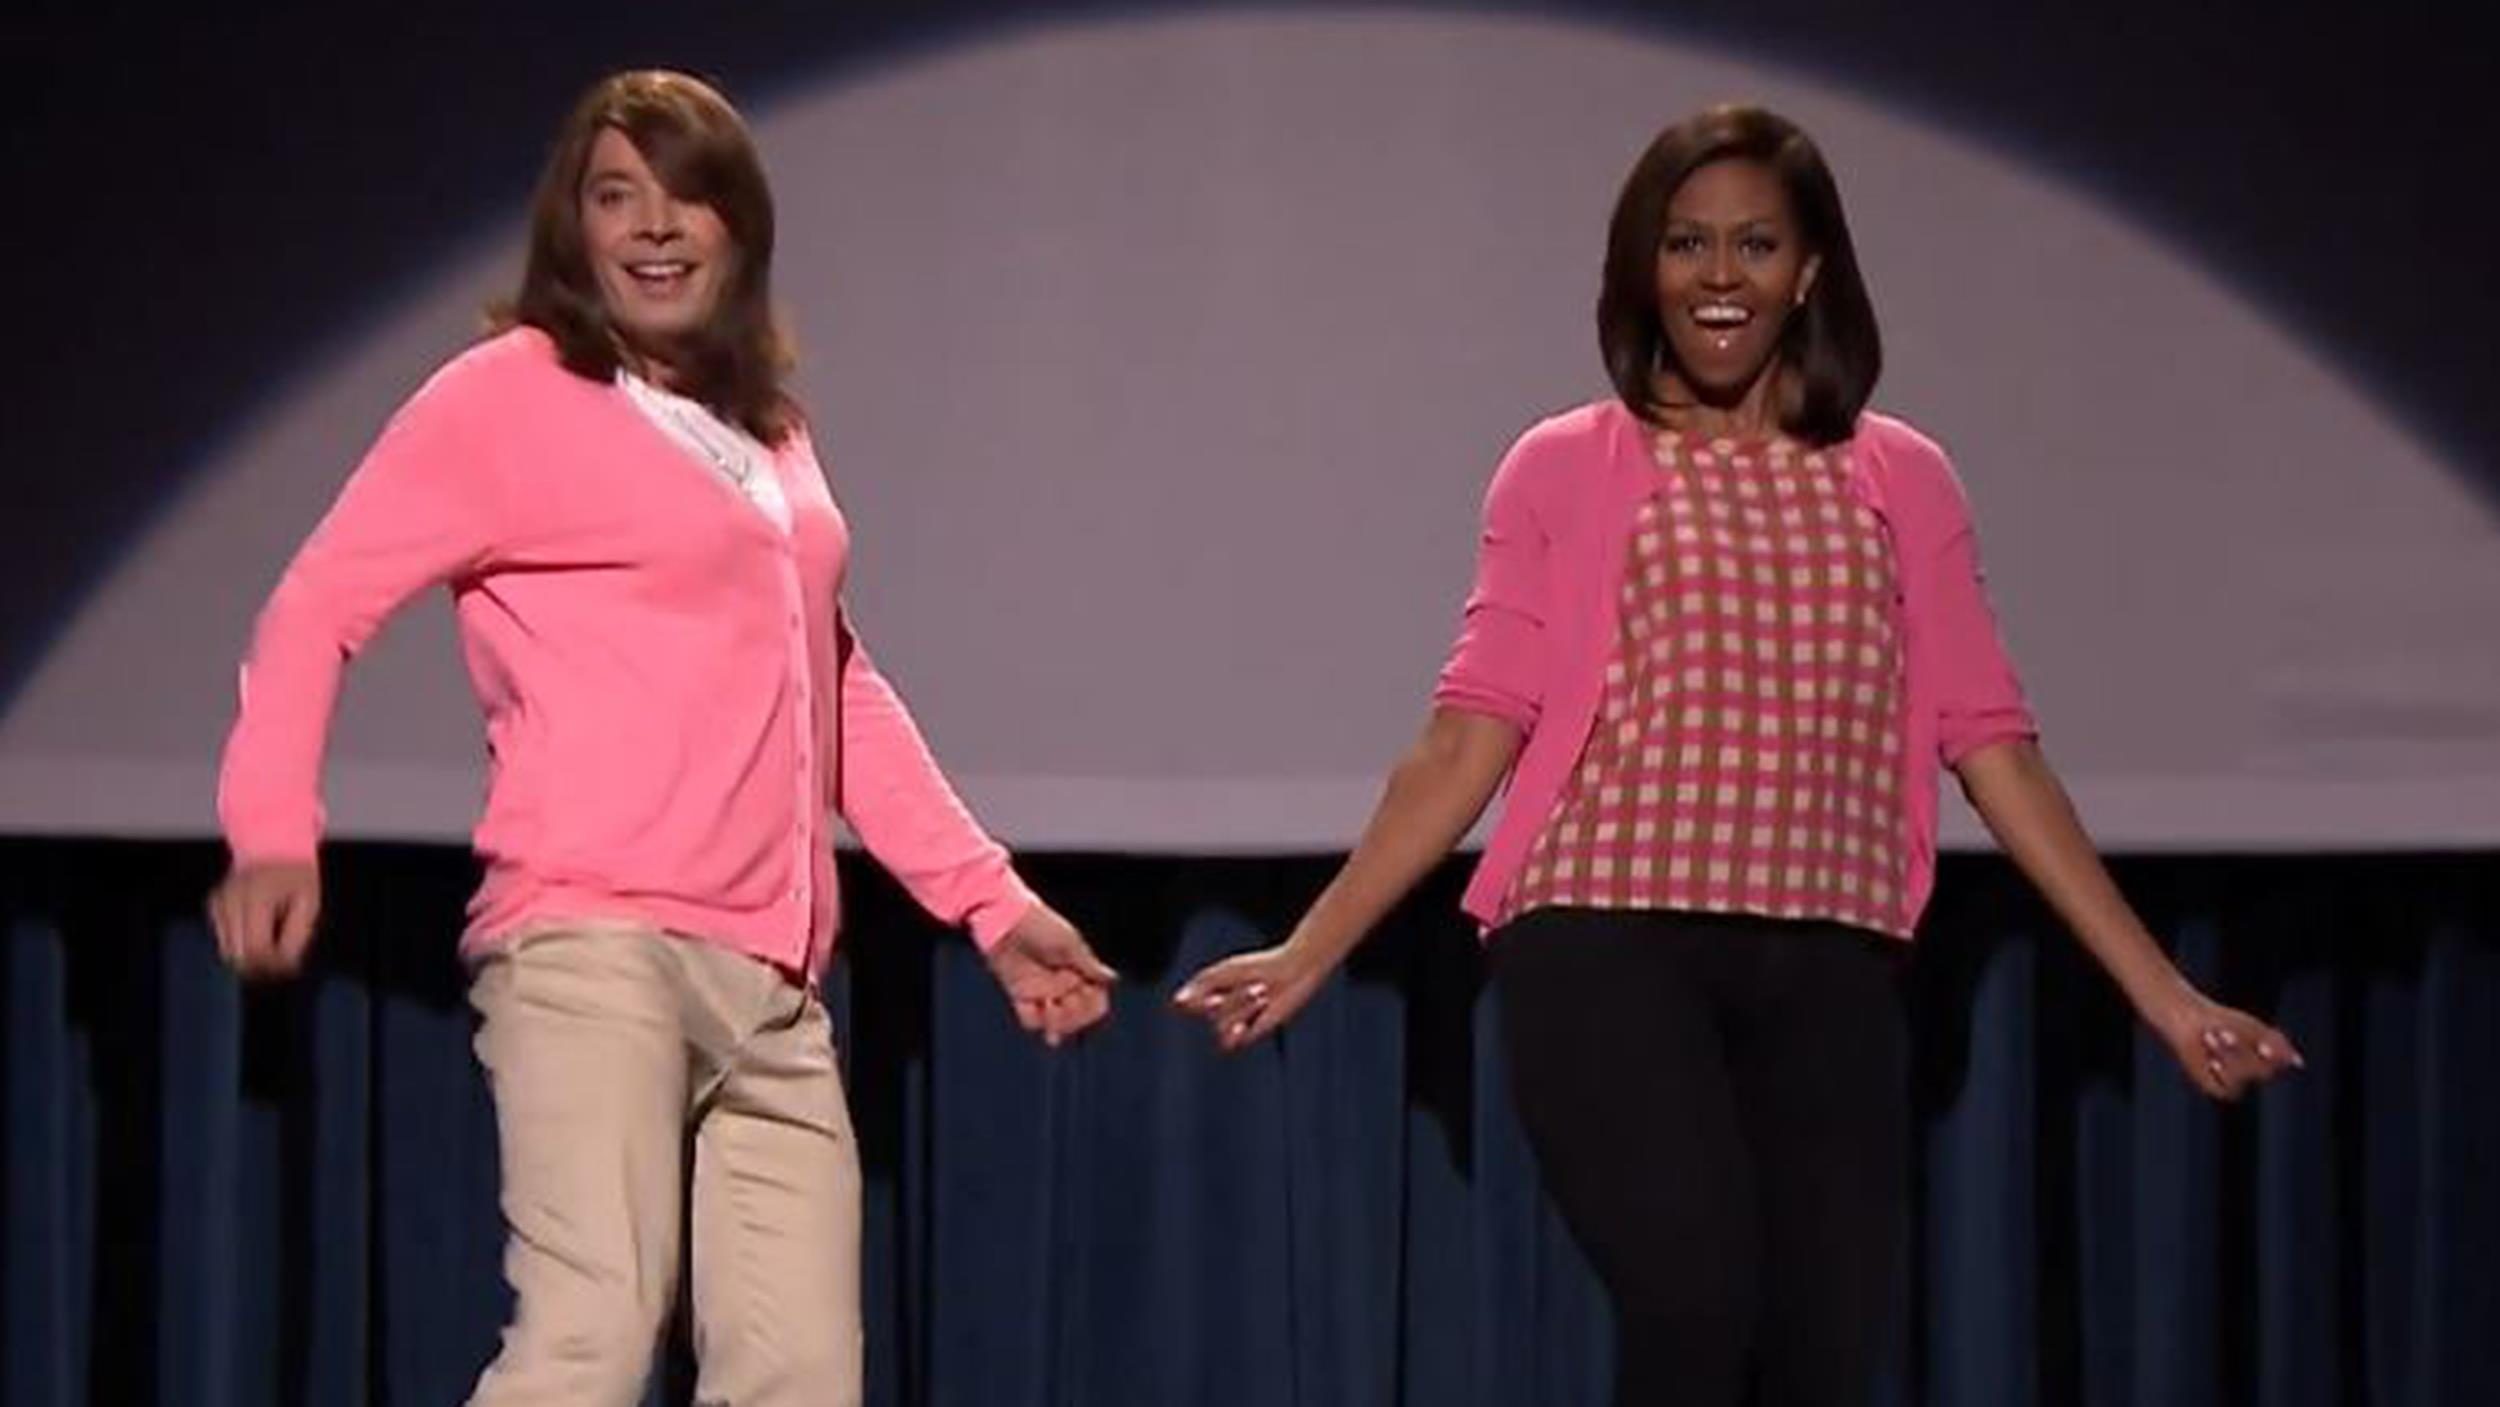 Mom dancing returns! Michelle Obama returns to Jimmy ...